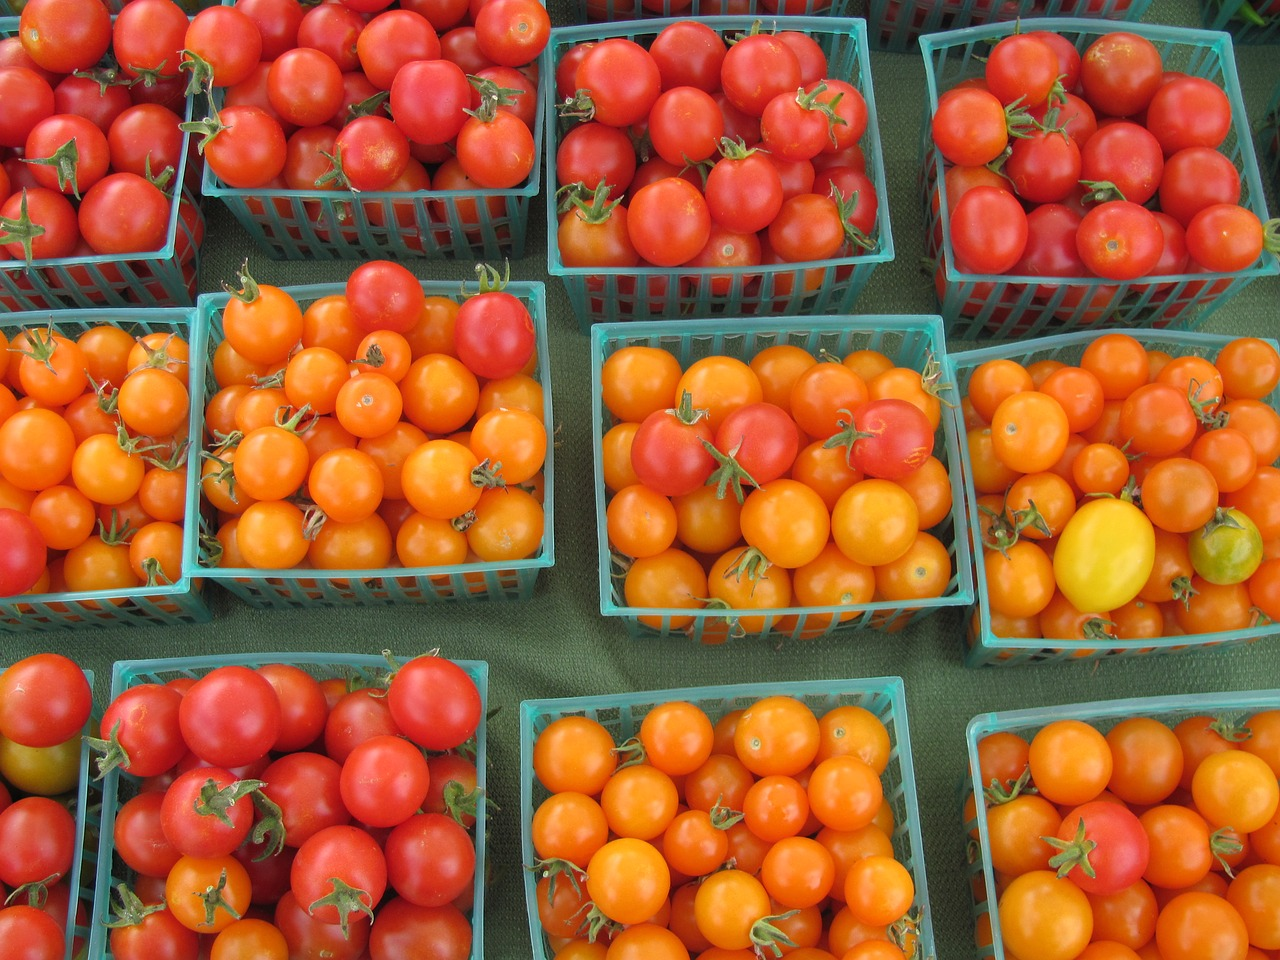 tomatoes farmers market healthy free photo